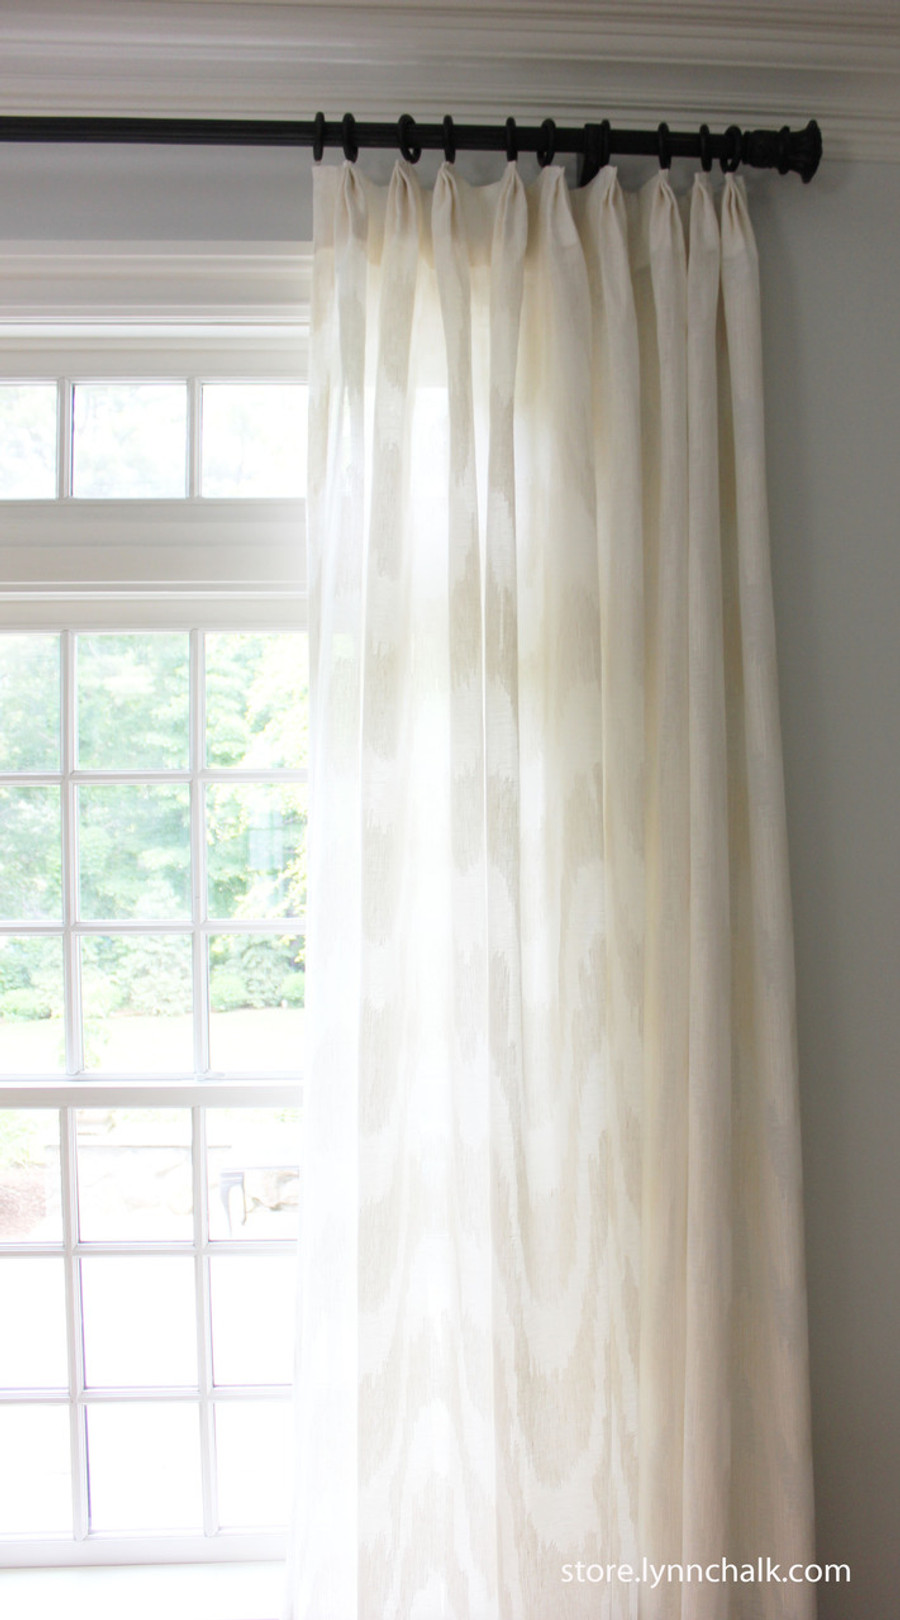 for pinched sale concept unbelievable image how girls bedroom curtain to pleated box thermal curtains youtube size little long pleat full make drapes of